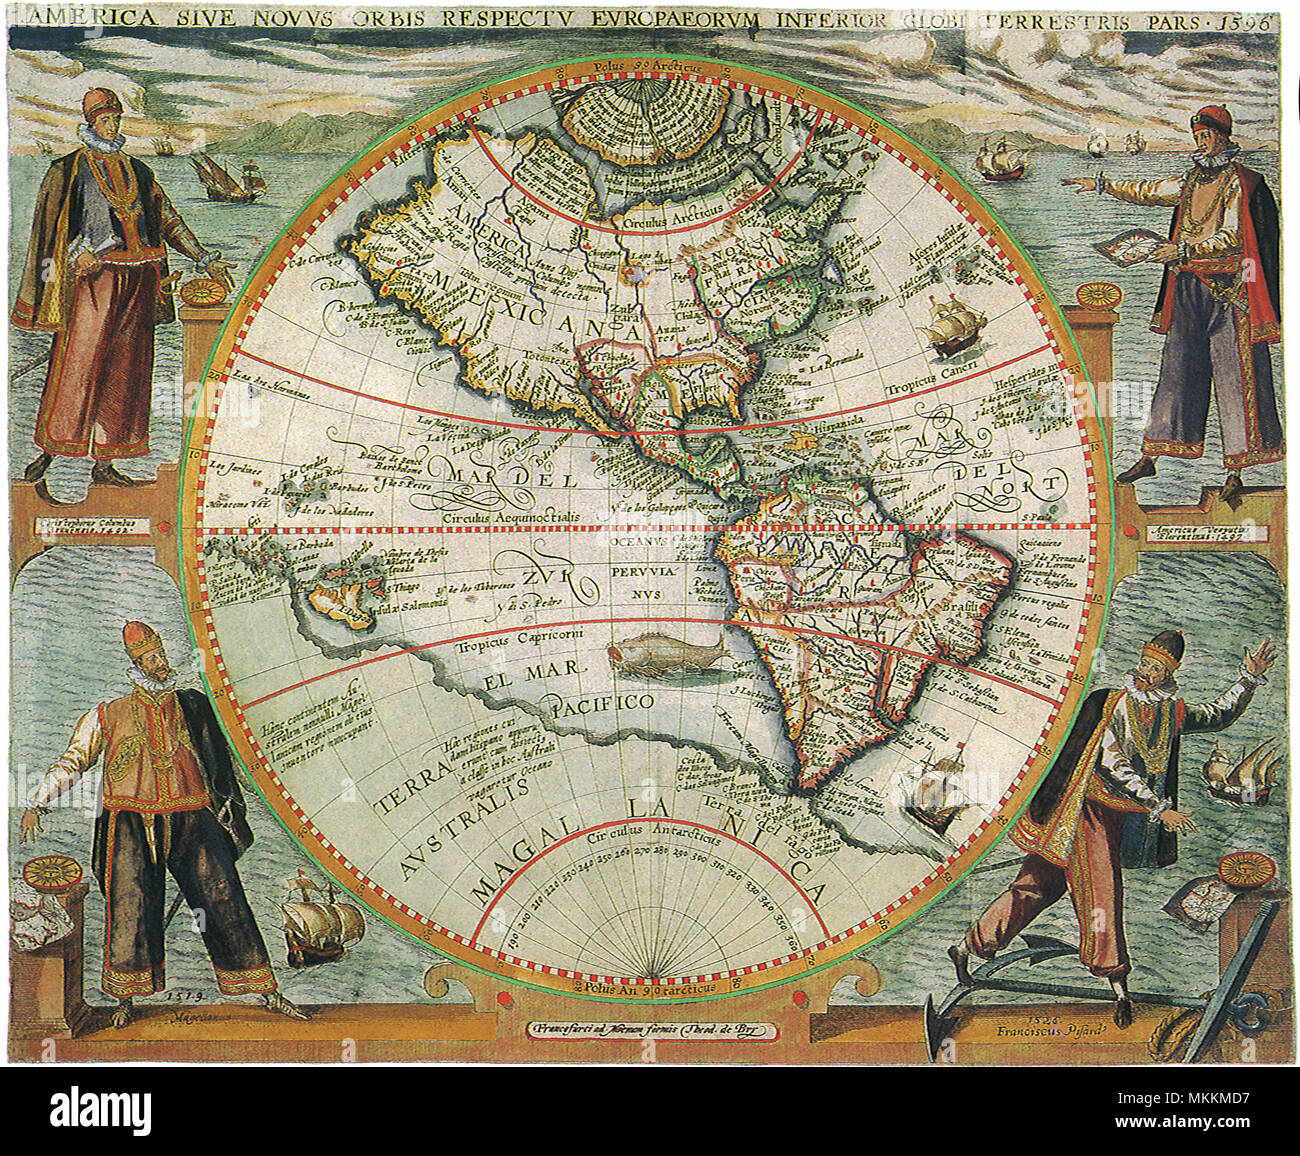 Old World Map 1597 Stock Photo: 184215283 - Alamy on old map sea monsters, old world maps framed, ancient beasts and monsters, antique nautical monsters, maps with sea monsters, see monsters, old world maps with mermaids, nice silly sea monsters, old maps of the world, map of us monsters, old world map with countries, here there be monsters, old world maps murals, old world explorer maps, old world maps printable, old japanese monsters, ancient sea monsters, vintage maritime sea monsters, old nautical maps,